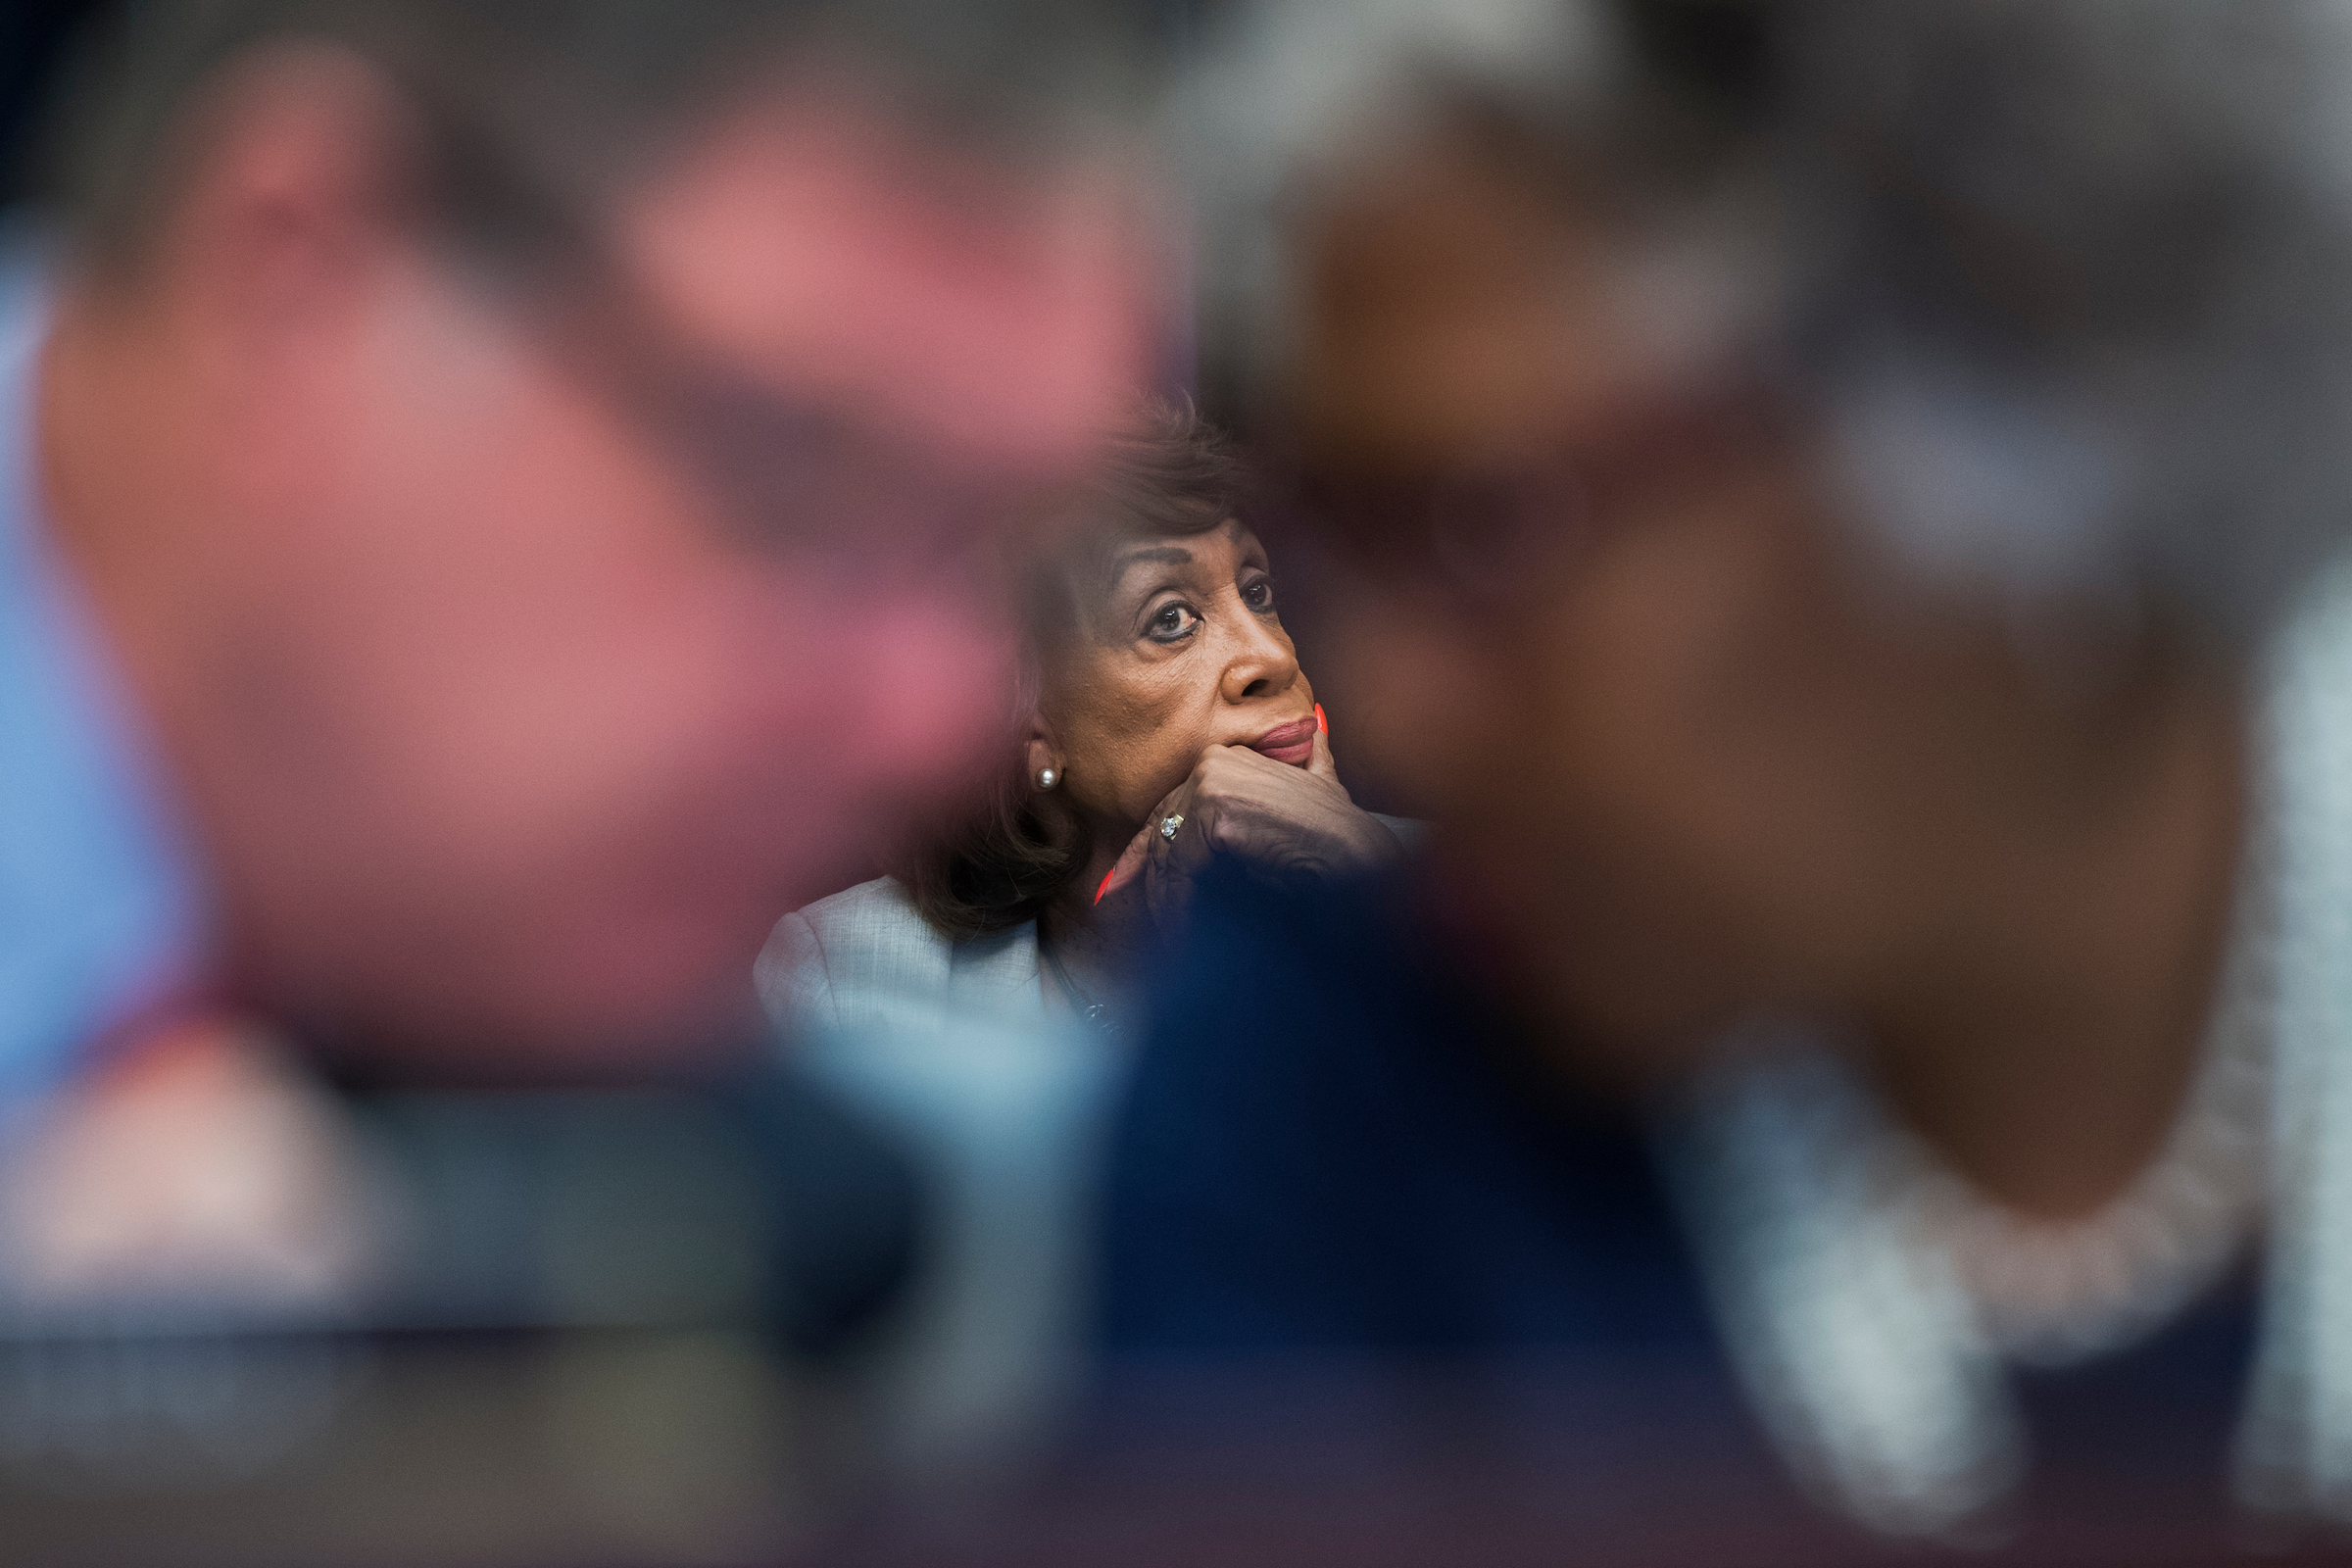 UNITED STATES - OCTOBER 11: Rep. Maxine Waters, D-Calif., center, ranking member of the House Financial Services Committee, attends a markup in Rayburn Building on October 11, 2017. Reps. Joyce Beatty, D-Ohio, and Denny Heck, D-Wash., also appear. (Photo By Tom Williams/CQ Roll Call)